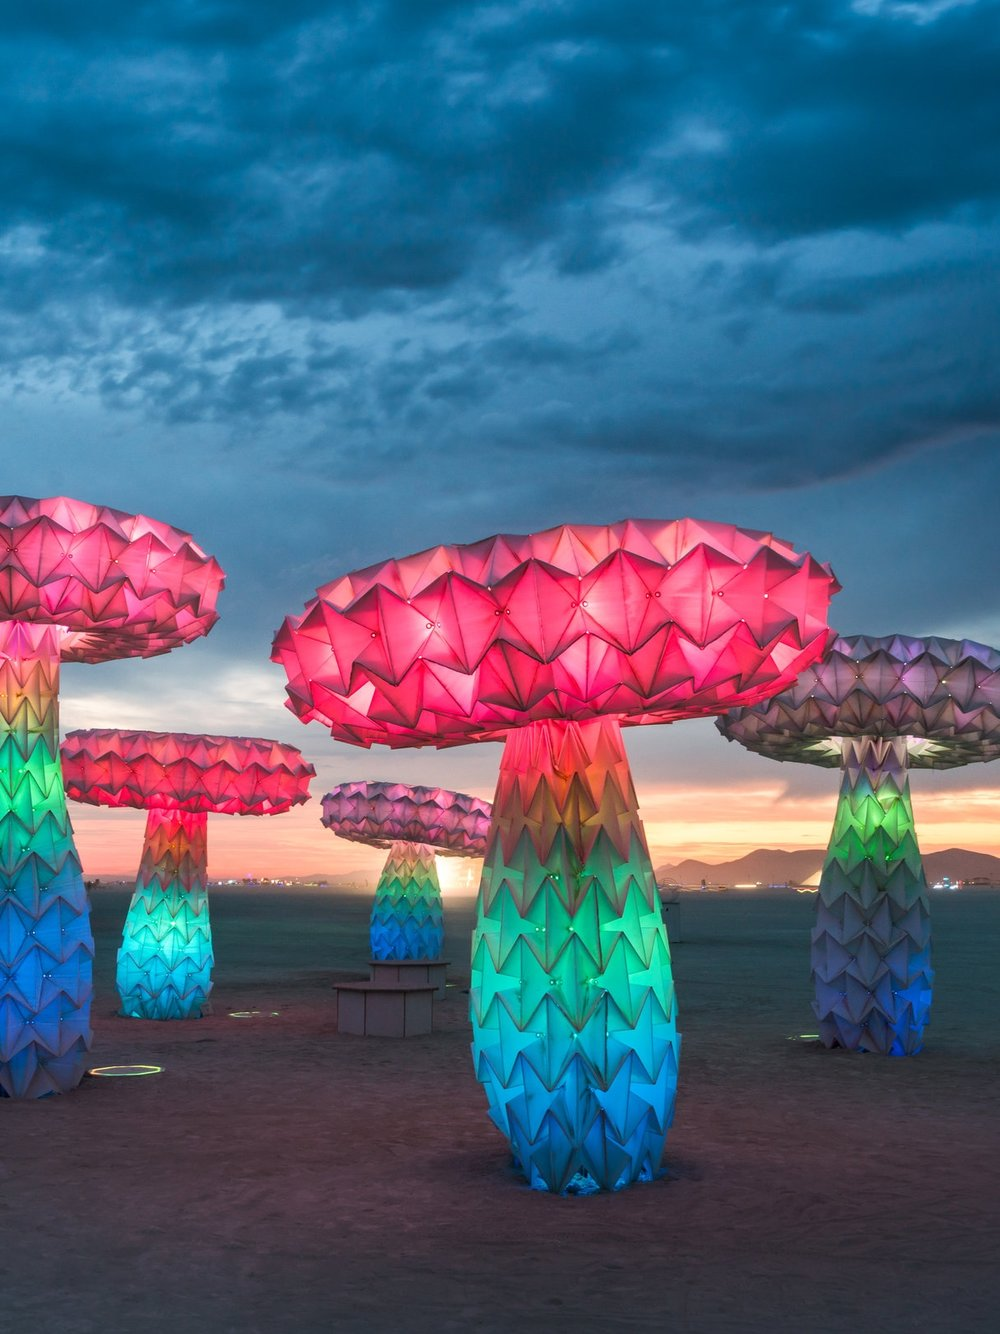 Shrumen Lumen   (2016) Five large-scale Origami mushrooms that morph into different shapes when activated by visitors. Currently at at The Smithsonian's Renwick Gallery in Washington, D.C. for the exhibit  No Spectators: The Art of Burning Man.    Photograph by Rene Smith   [ See more ]